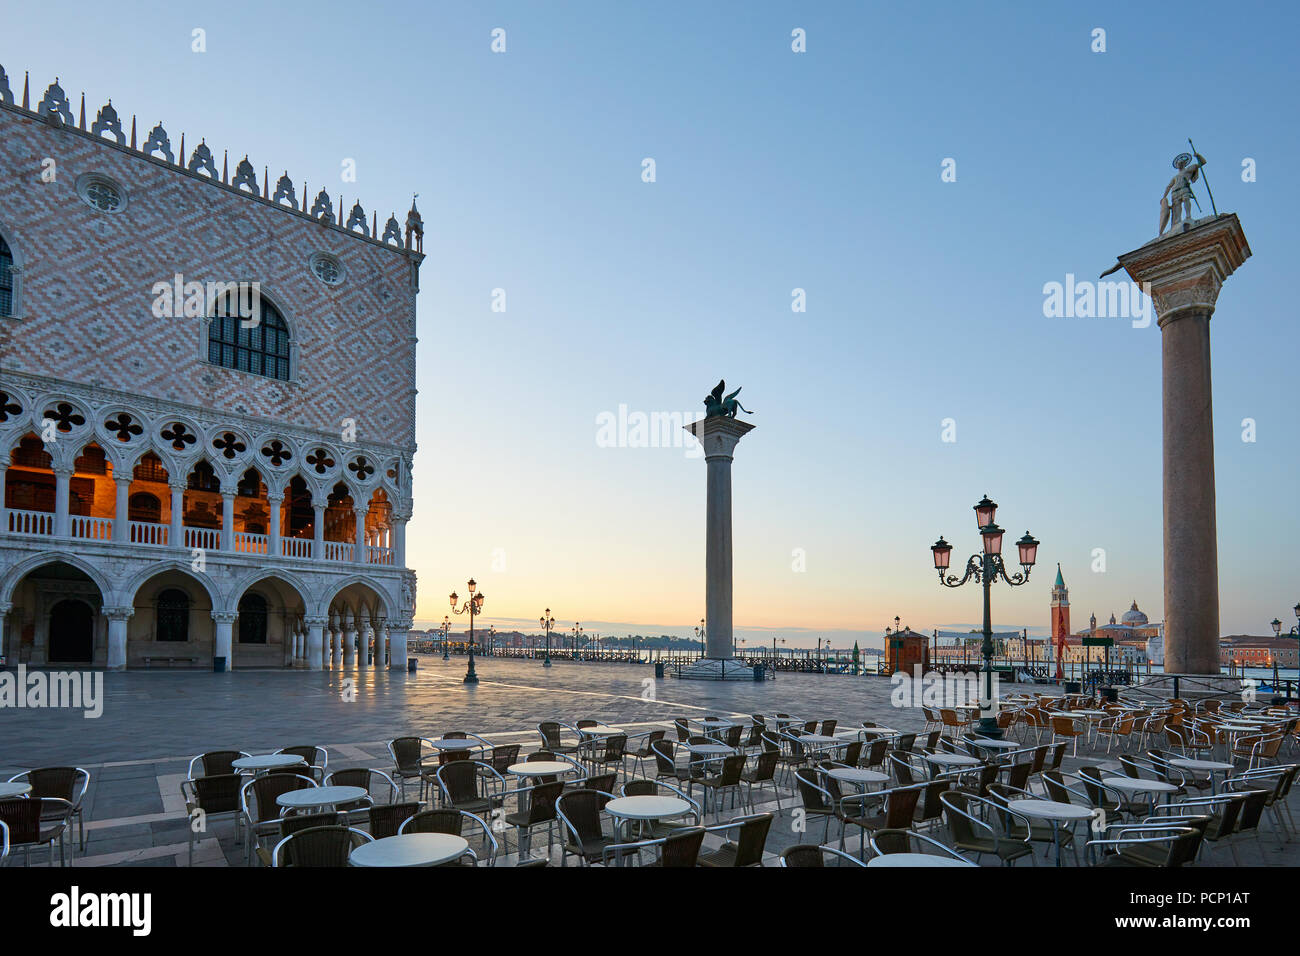 San Marco square with empty sidewalk tables, nobody at sunrise in Venice, Italy - Stock Image